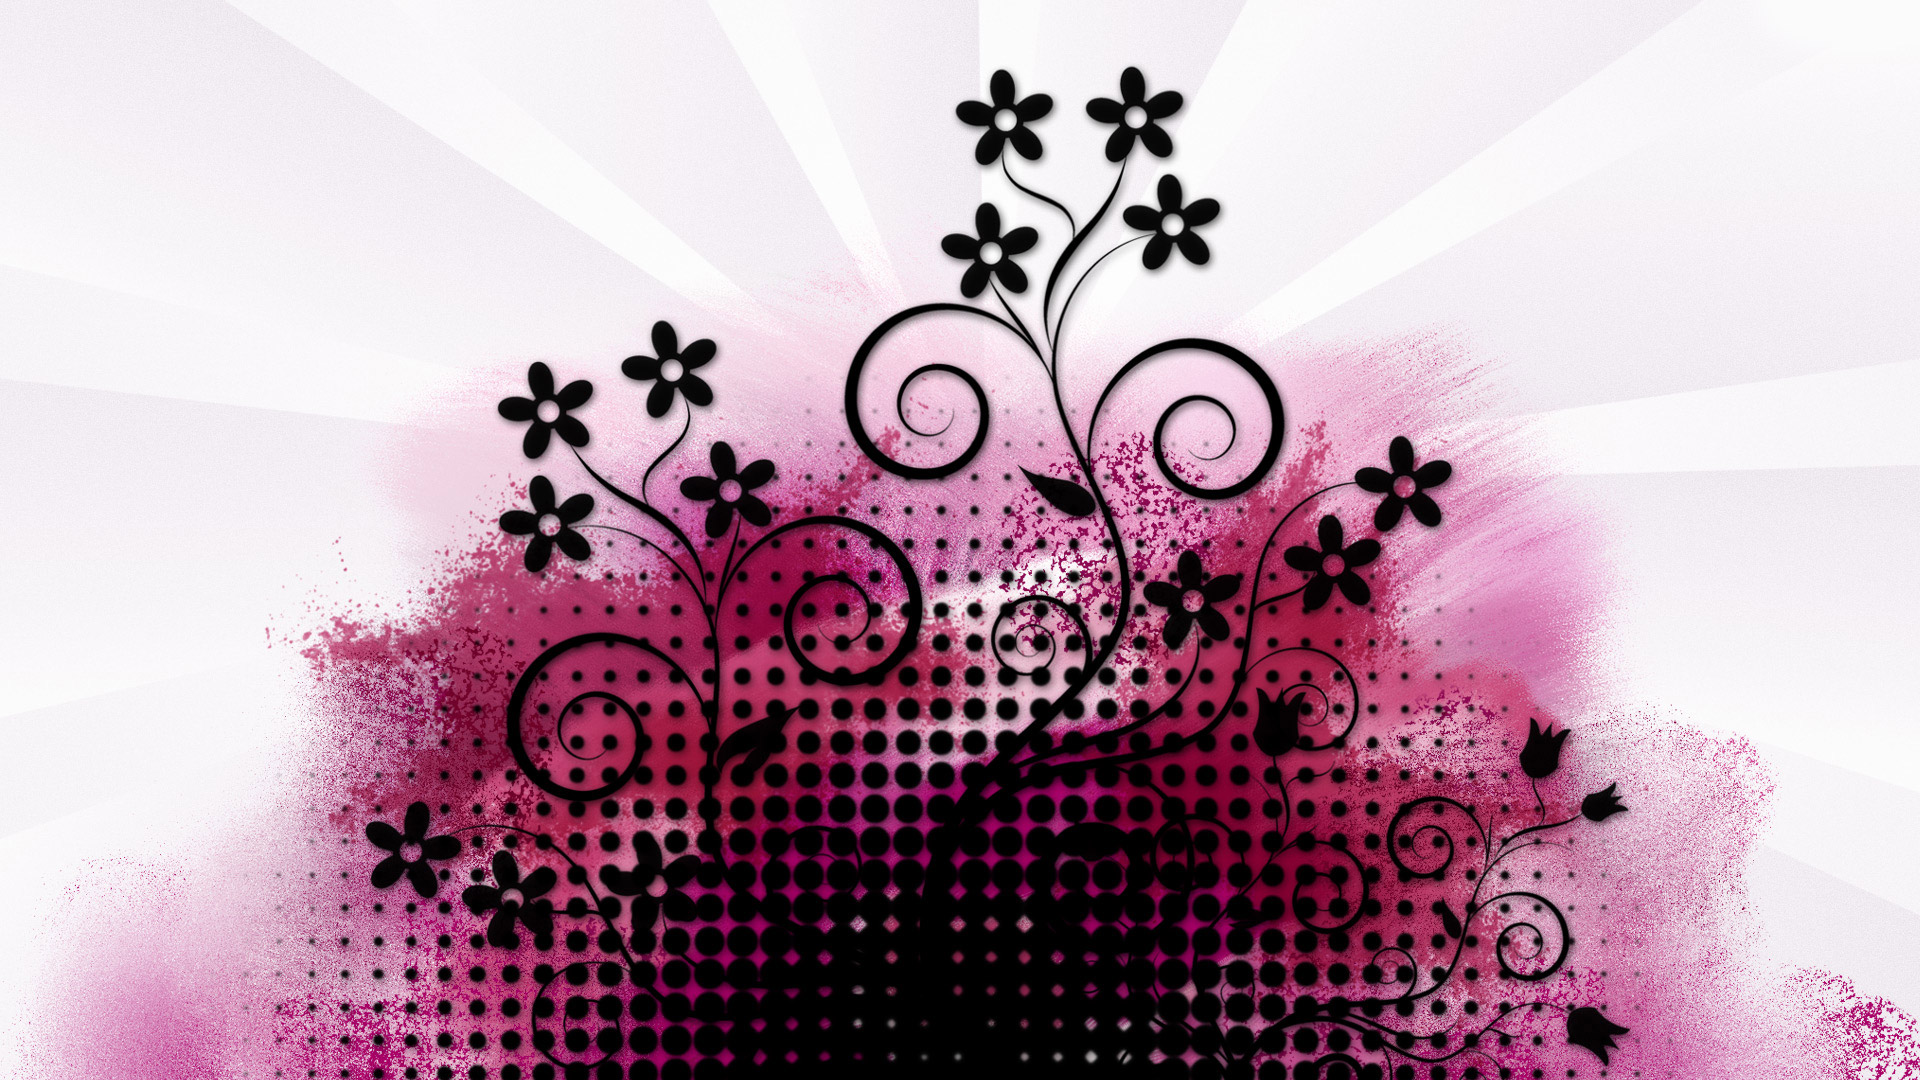 Pink and black wallpaper designs 5 cool hd wallpaper for Wallpaper design ideas